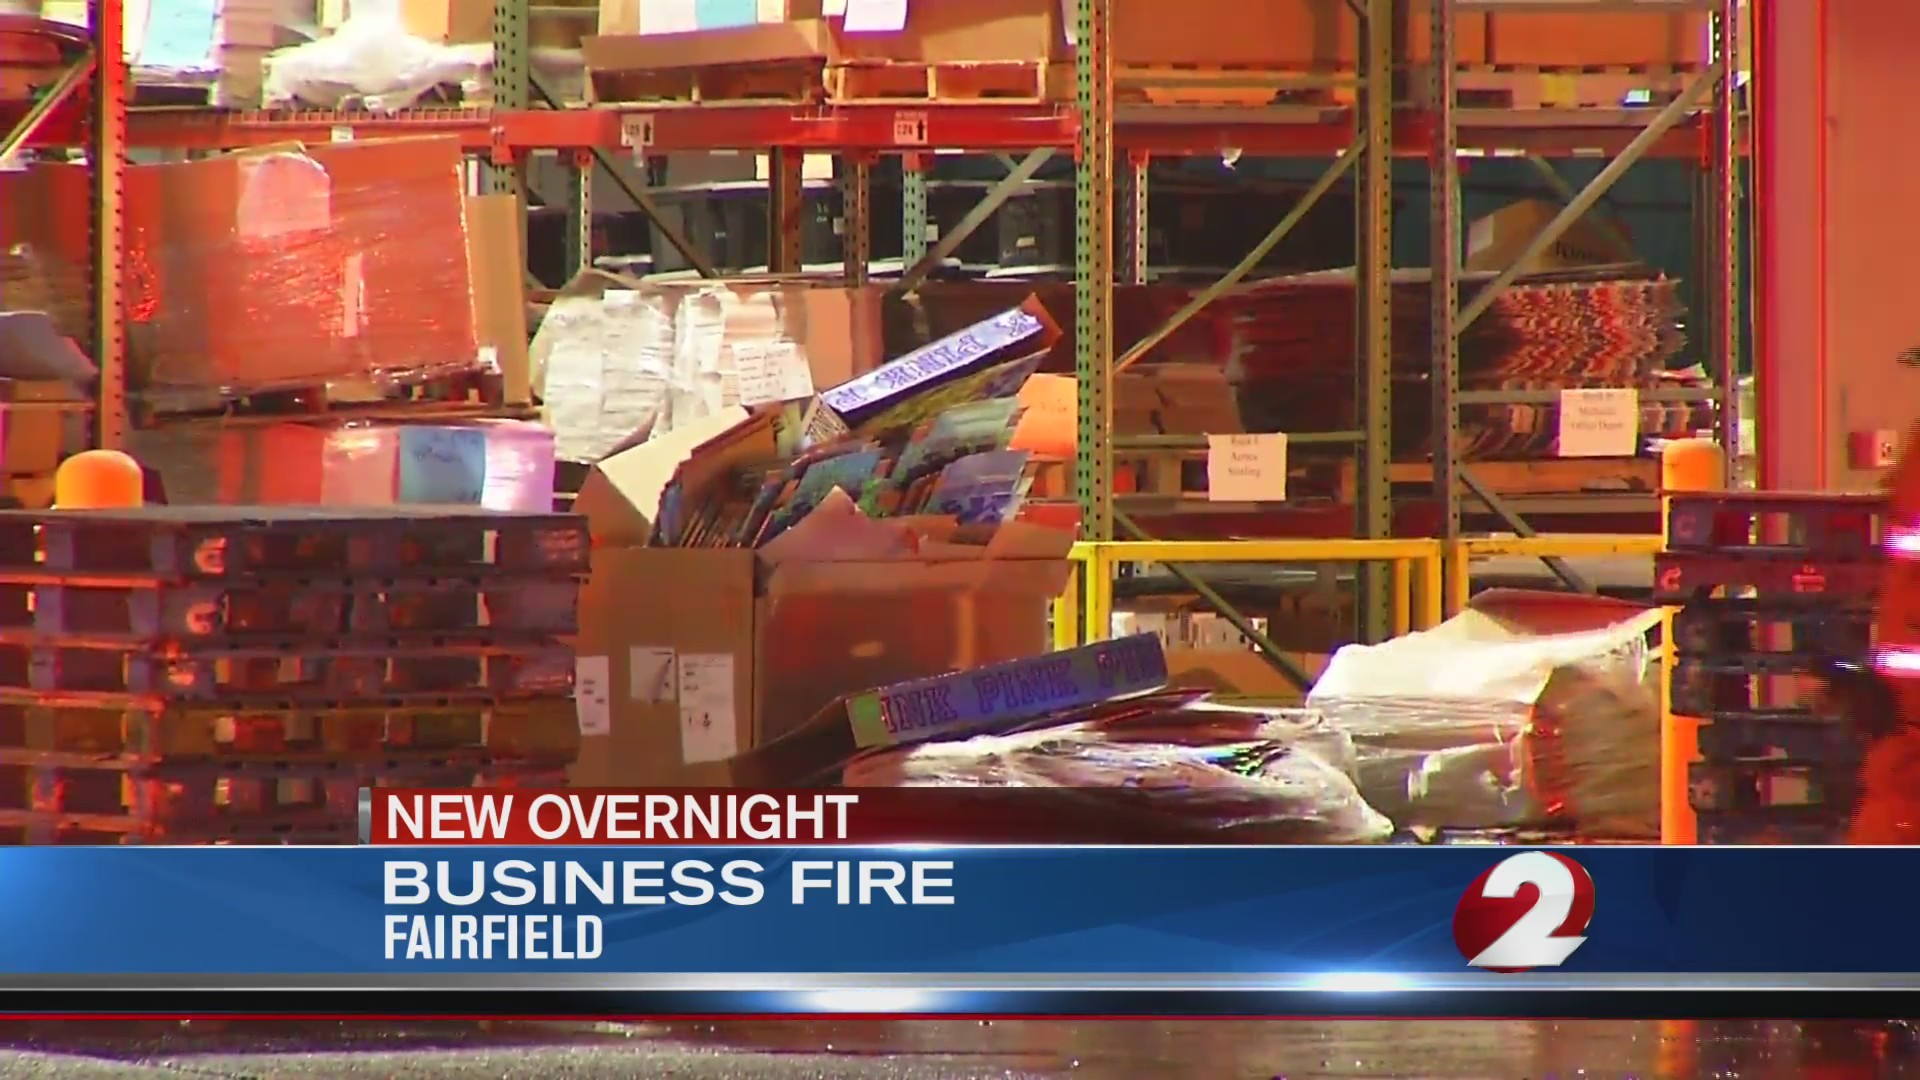 Fire crews called to Fairfield business